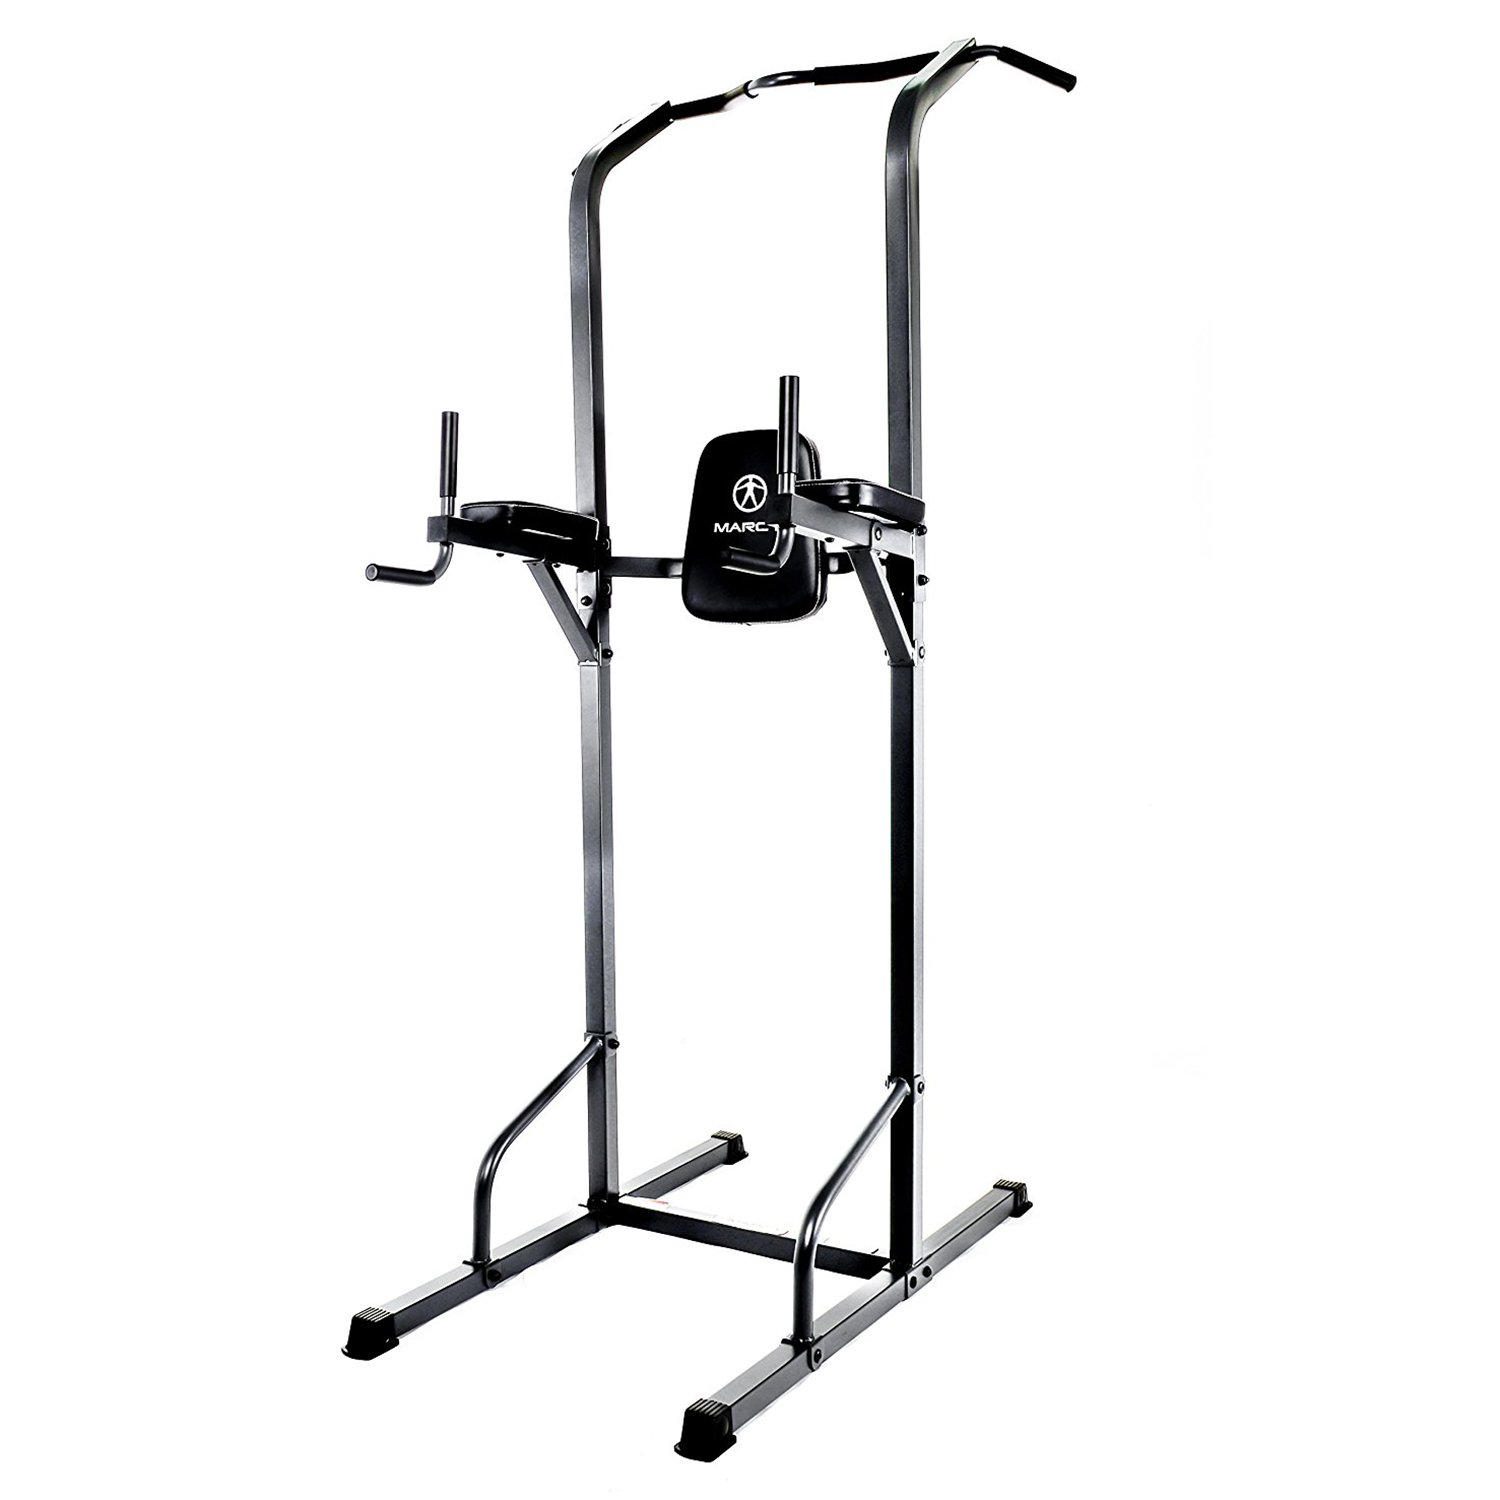 Marcy Pro Upper Body, Core, & Back Home Workout Steel Power Tower | TC-3515